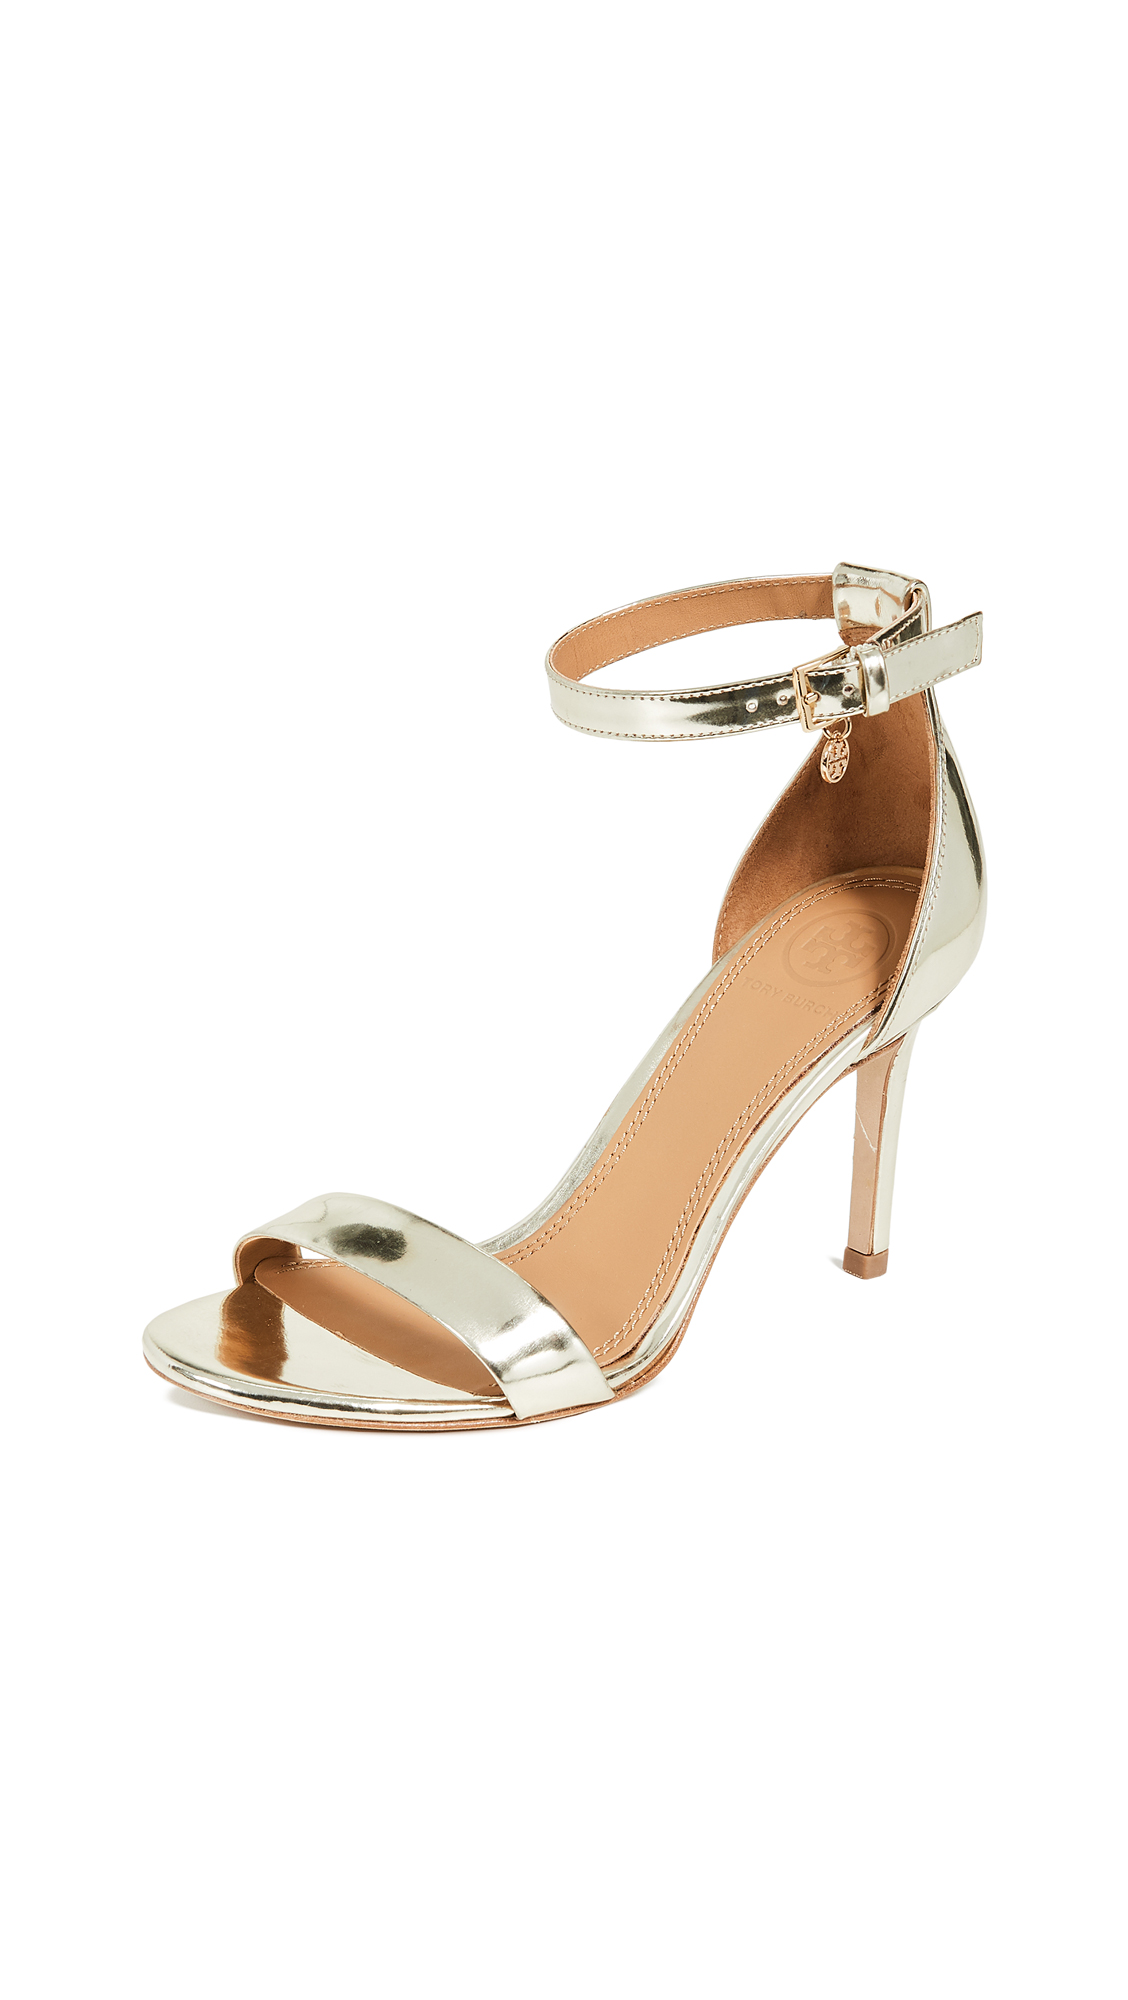 Tory Burch Ellie Ankle Strap Sandals - Spark Gold